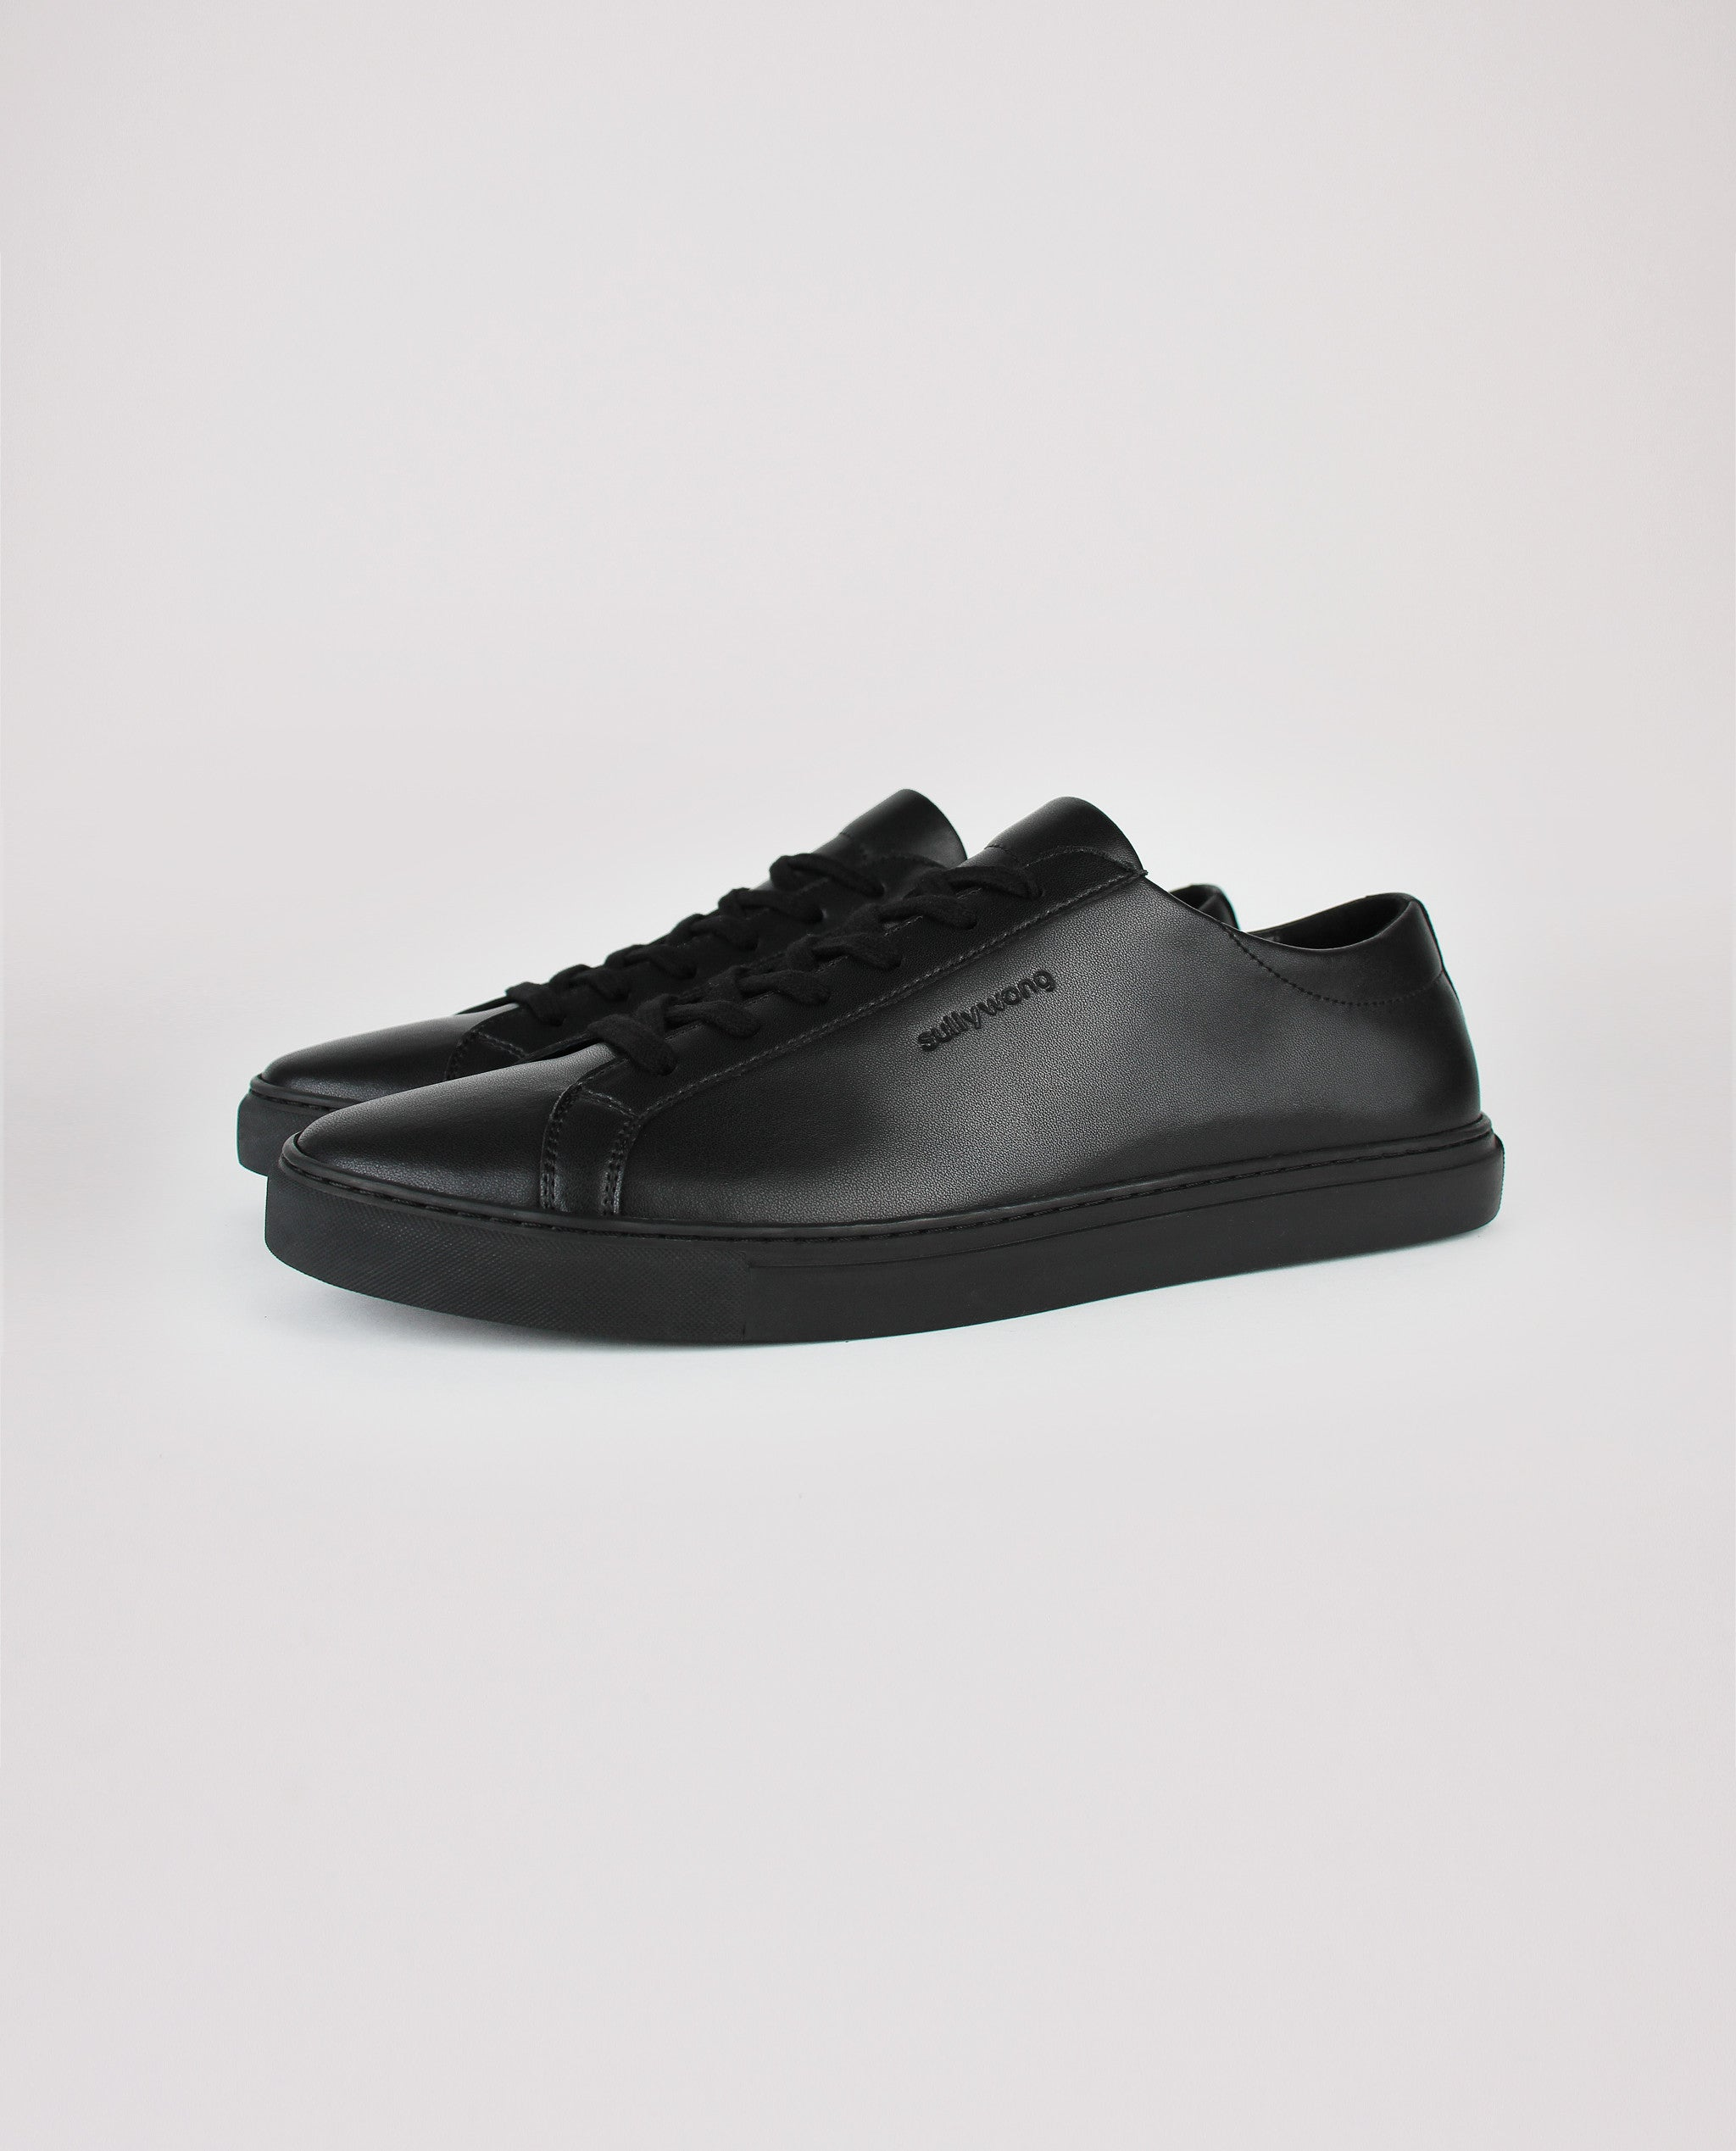 Sully Wong Men's Low Classic in Black